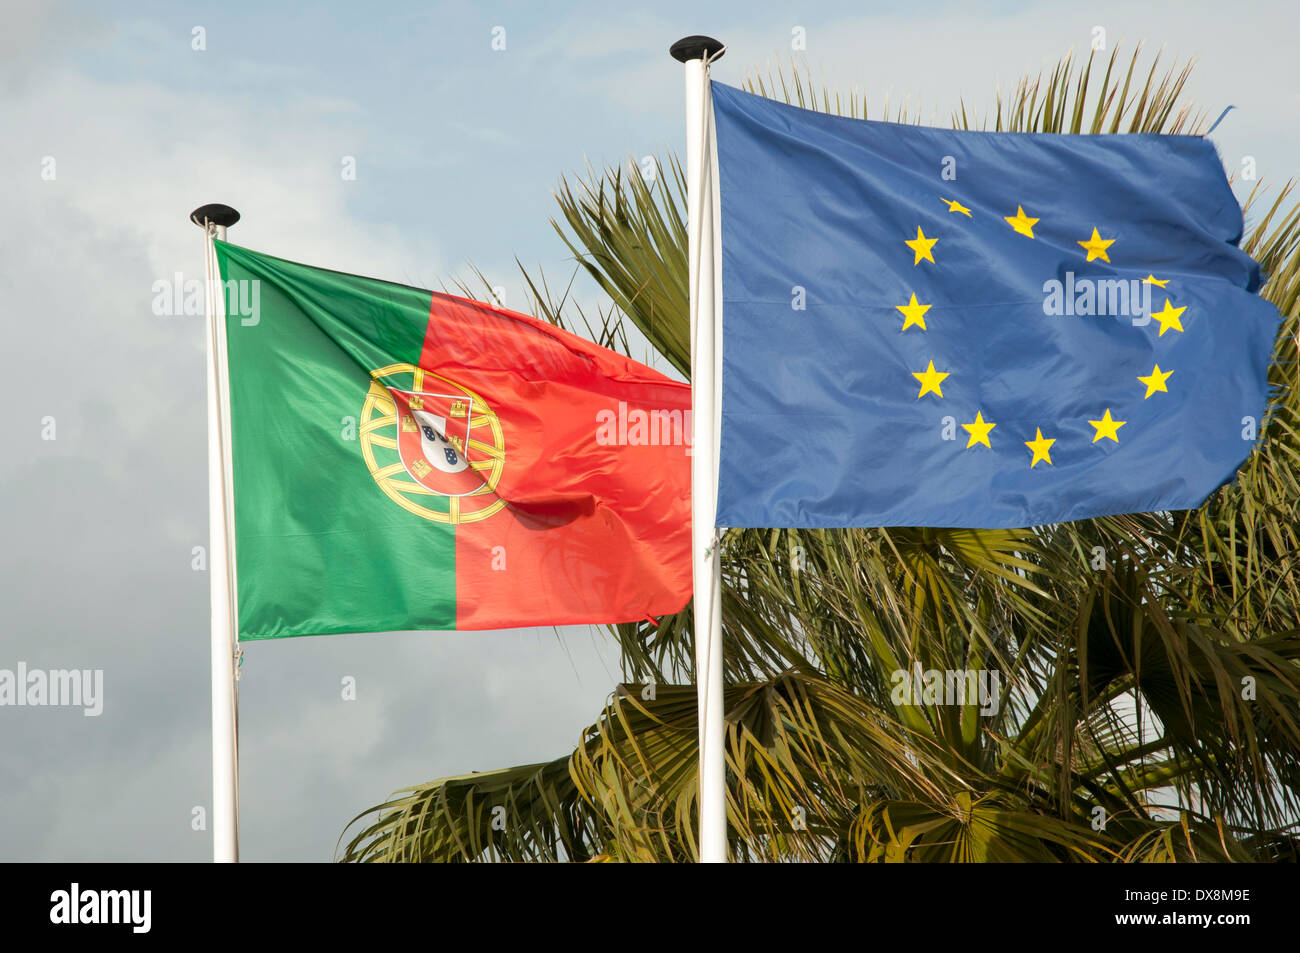 The portuguese and European Union flags - Stock Image